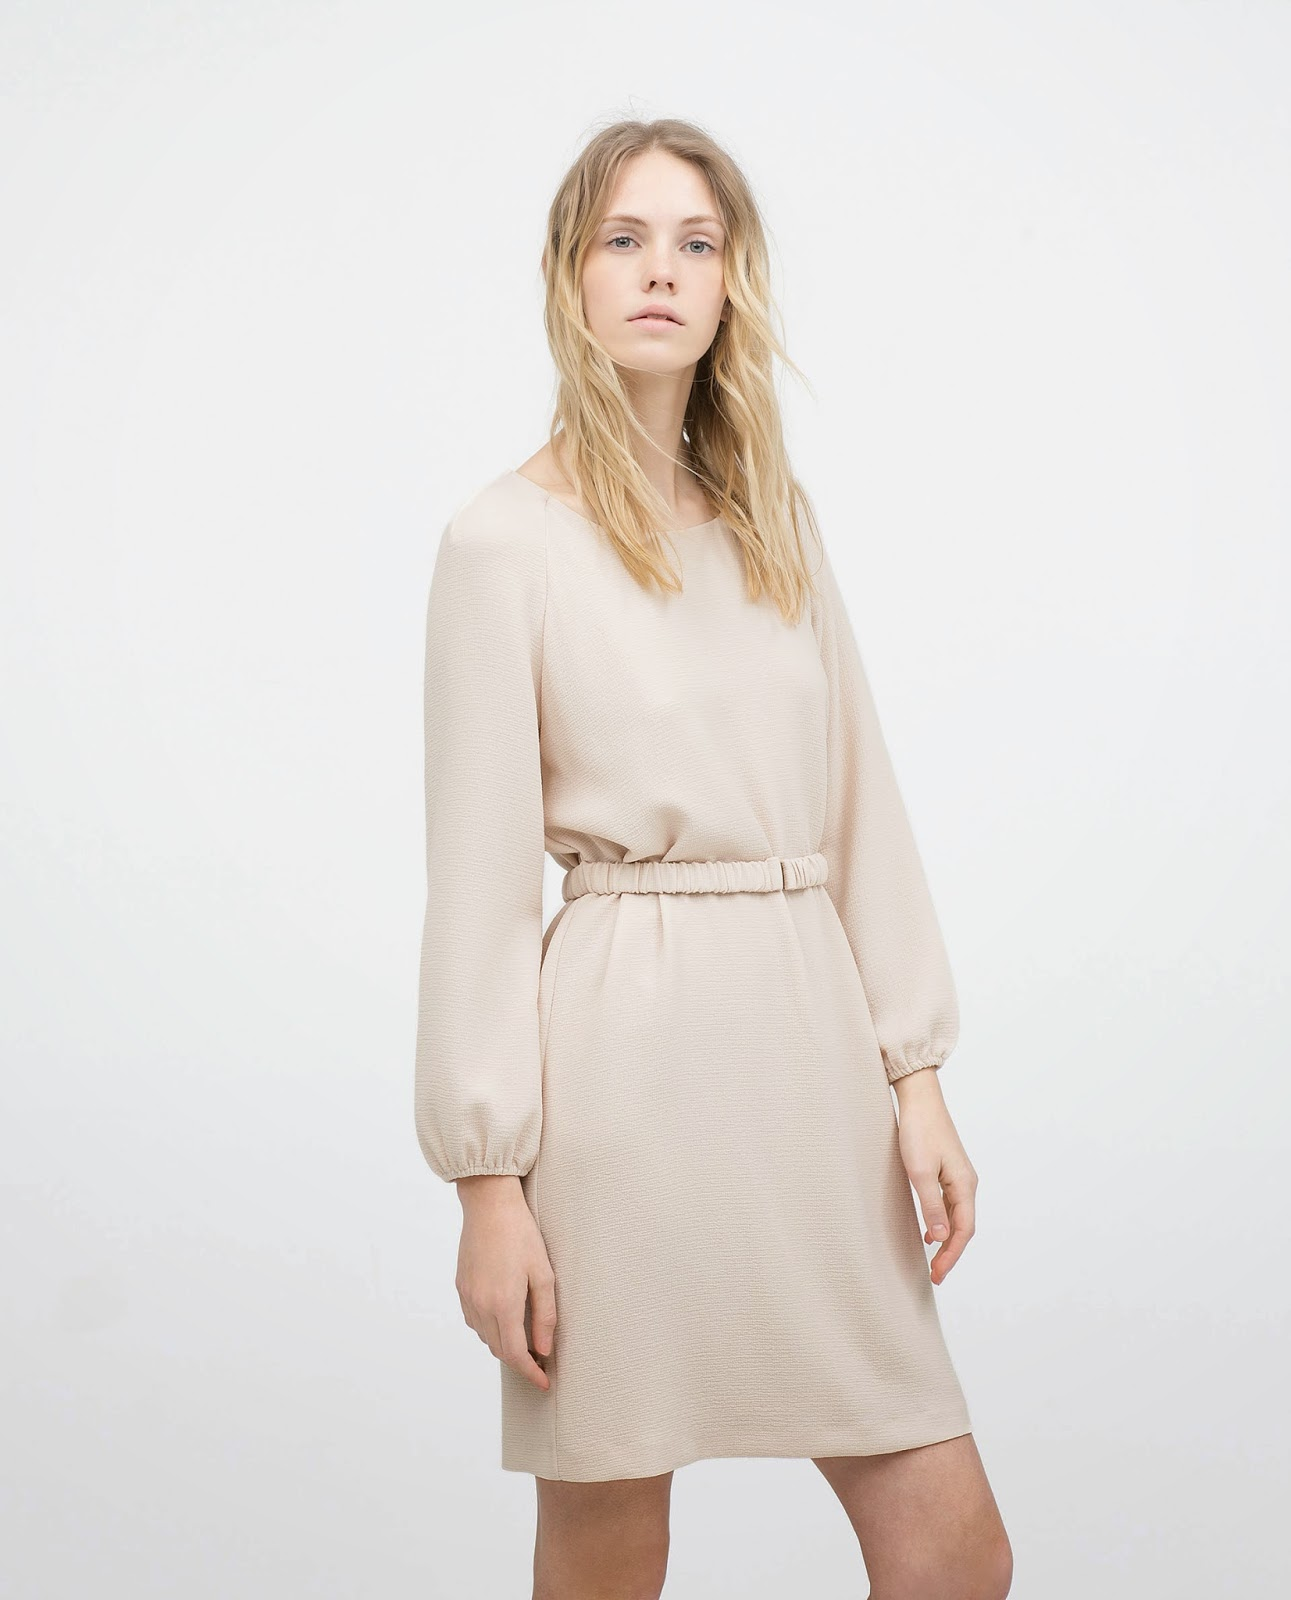 zara cream dress with belt,